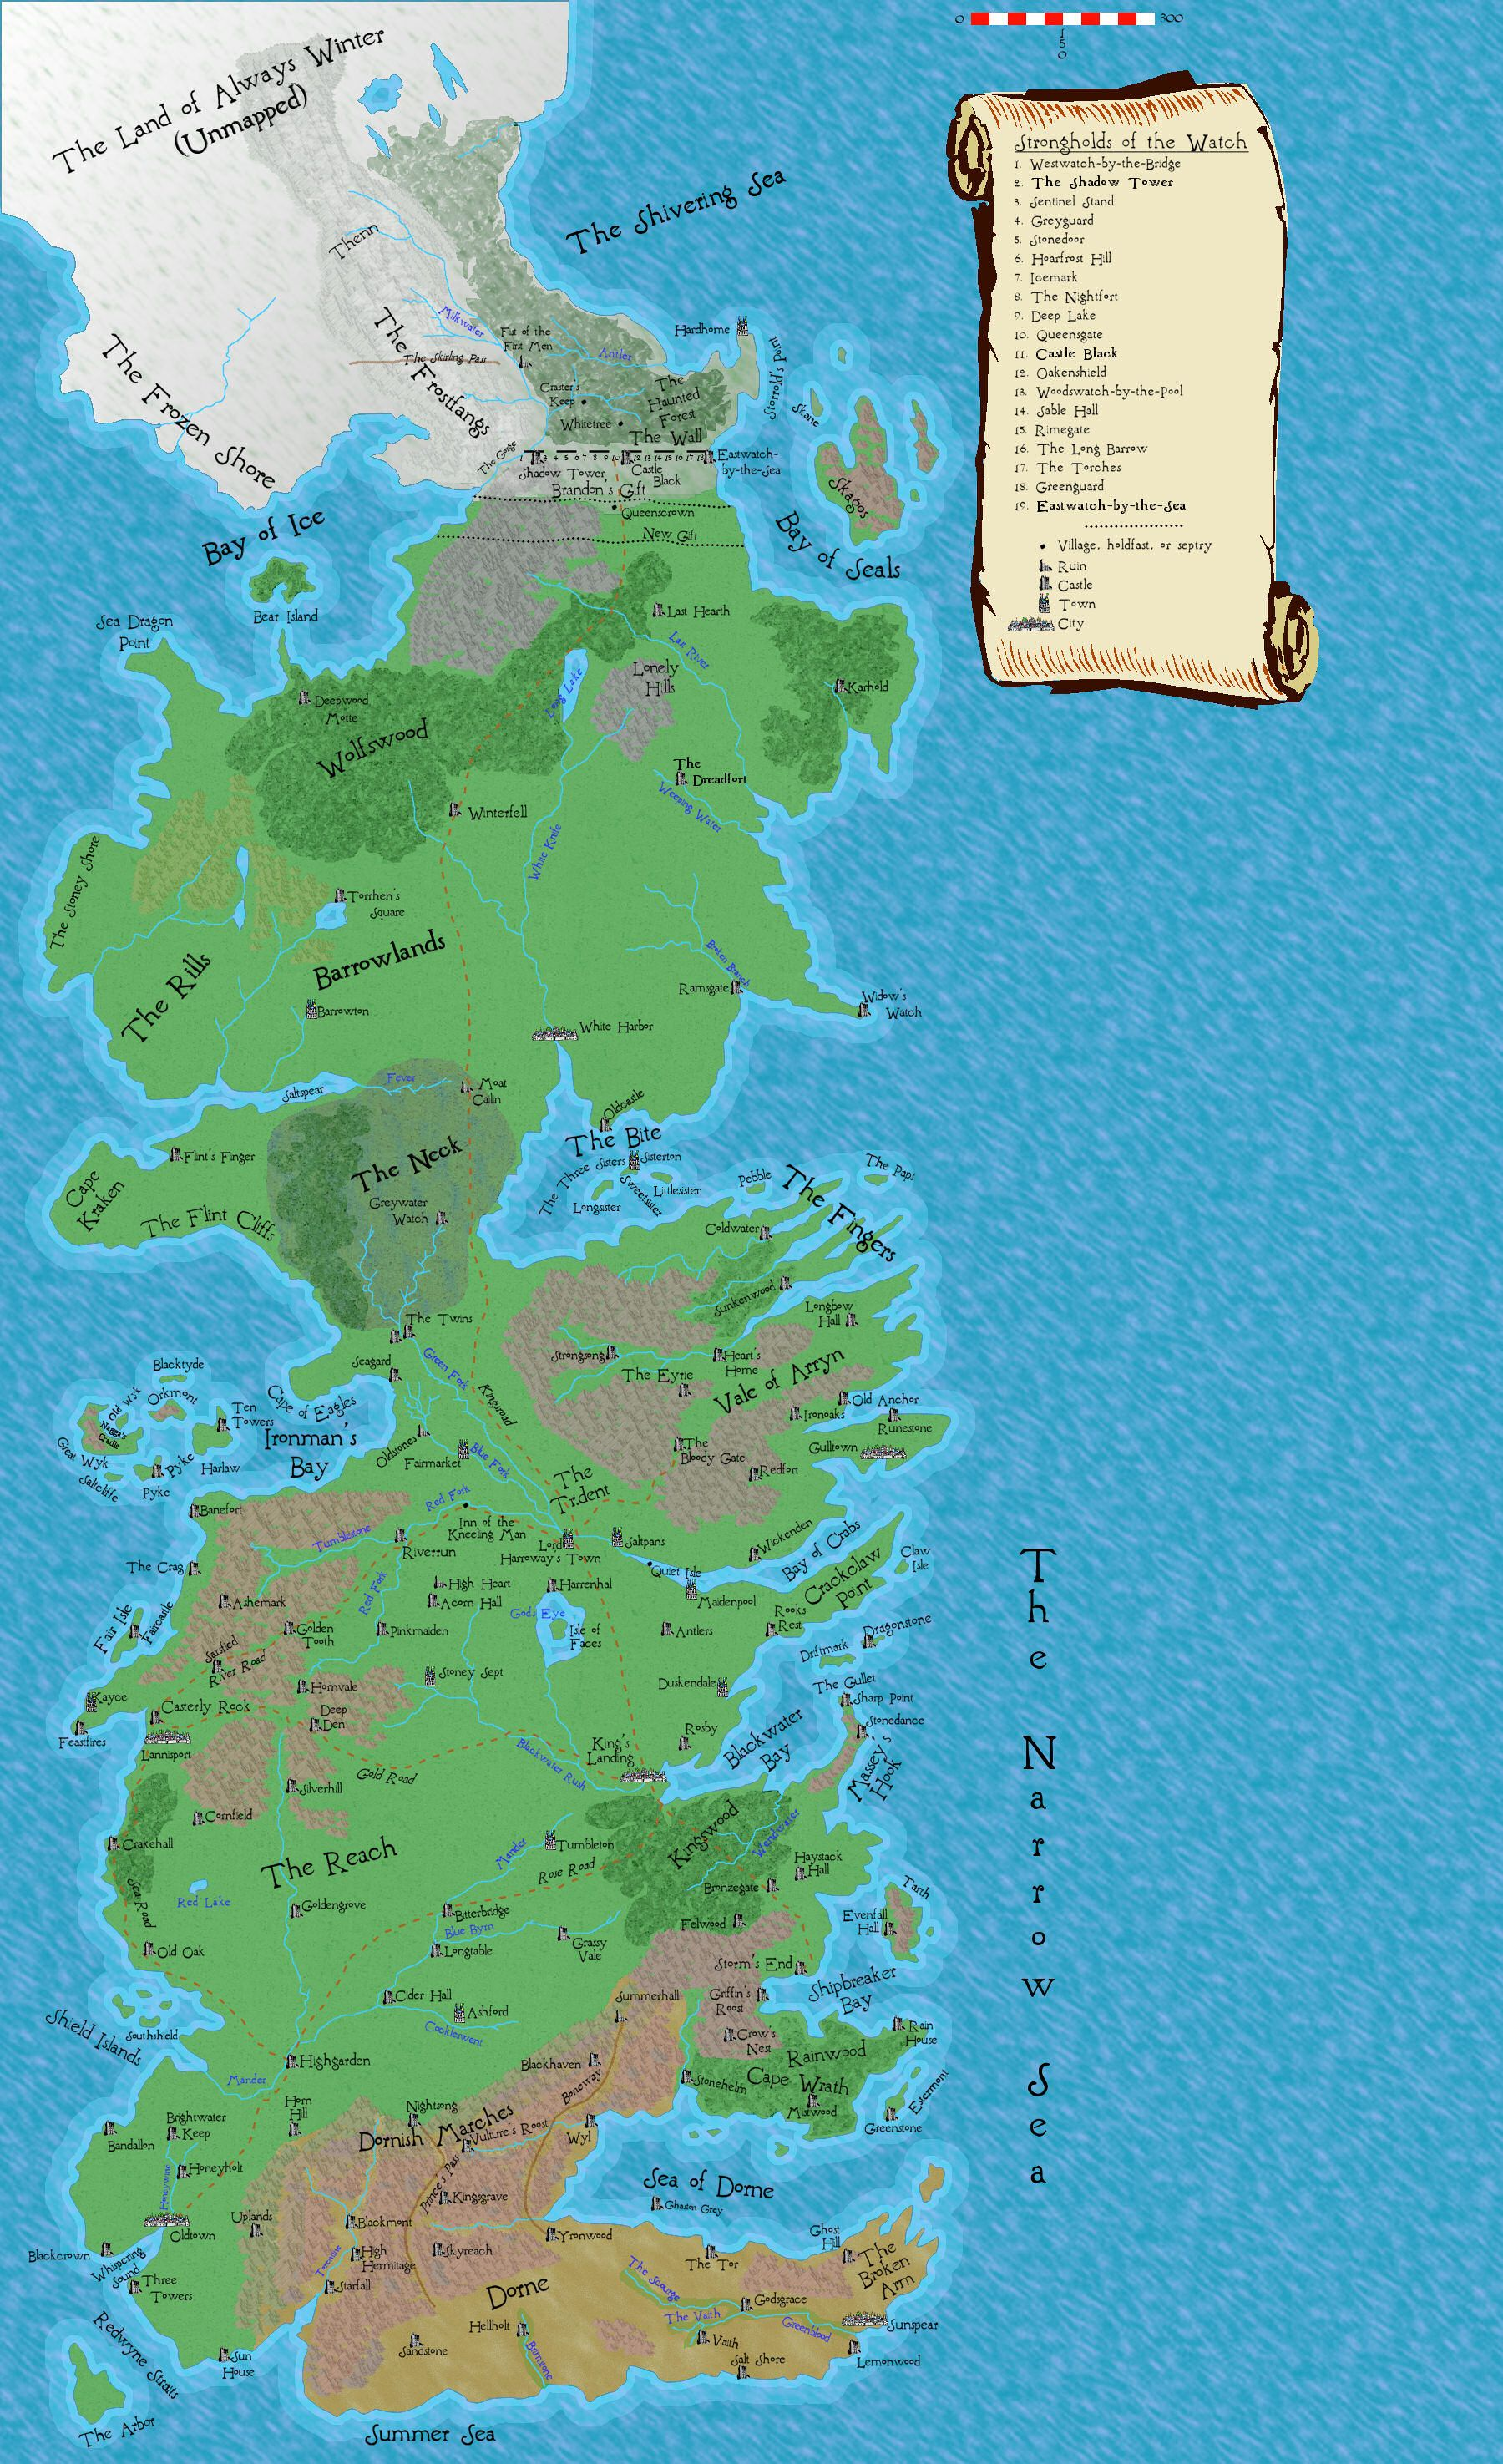 Map of westeros book maps pinterest westeros map book stuff map of westeros gumiabroncs Image collections